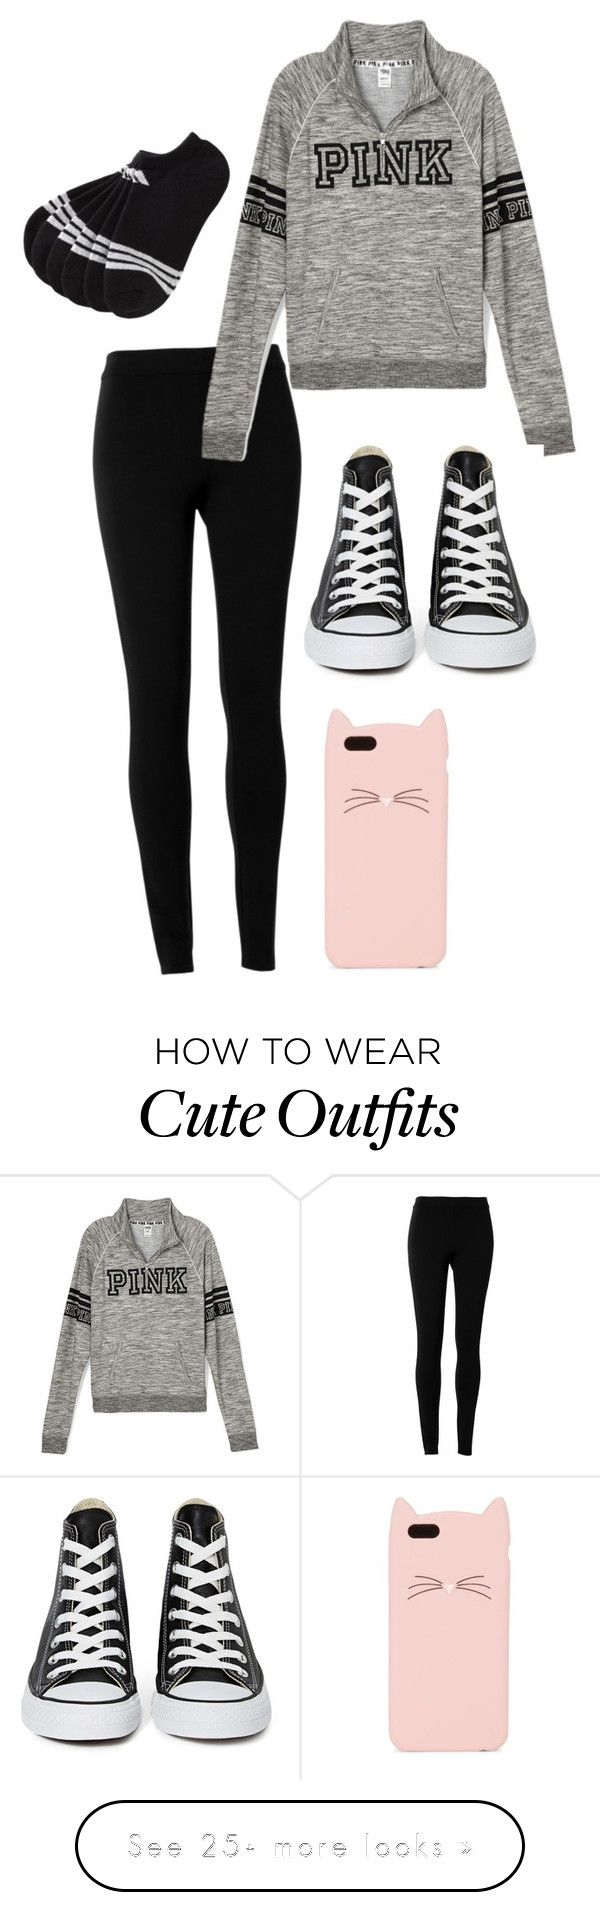 78 best images about teentween fashion for my girls on